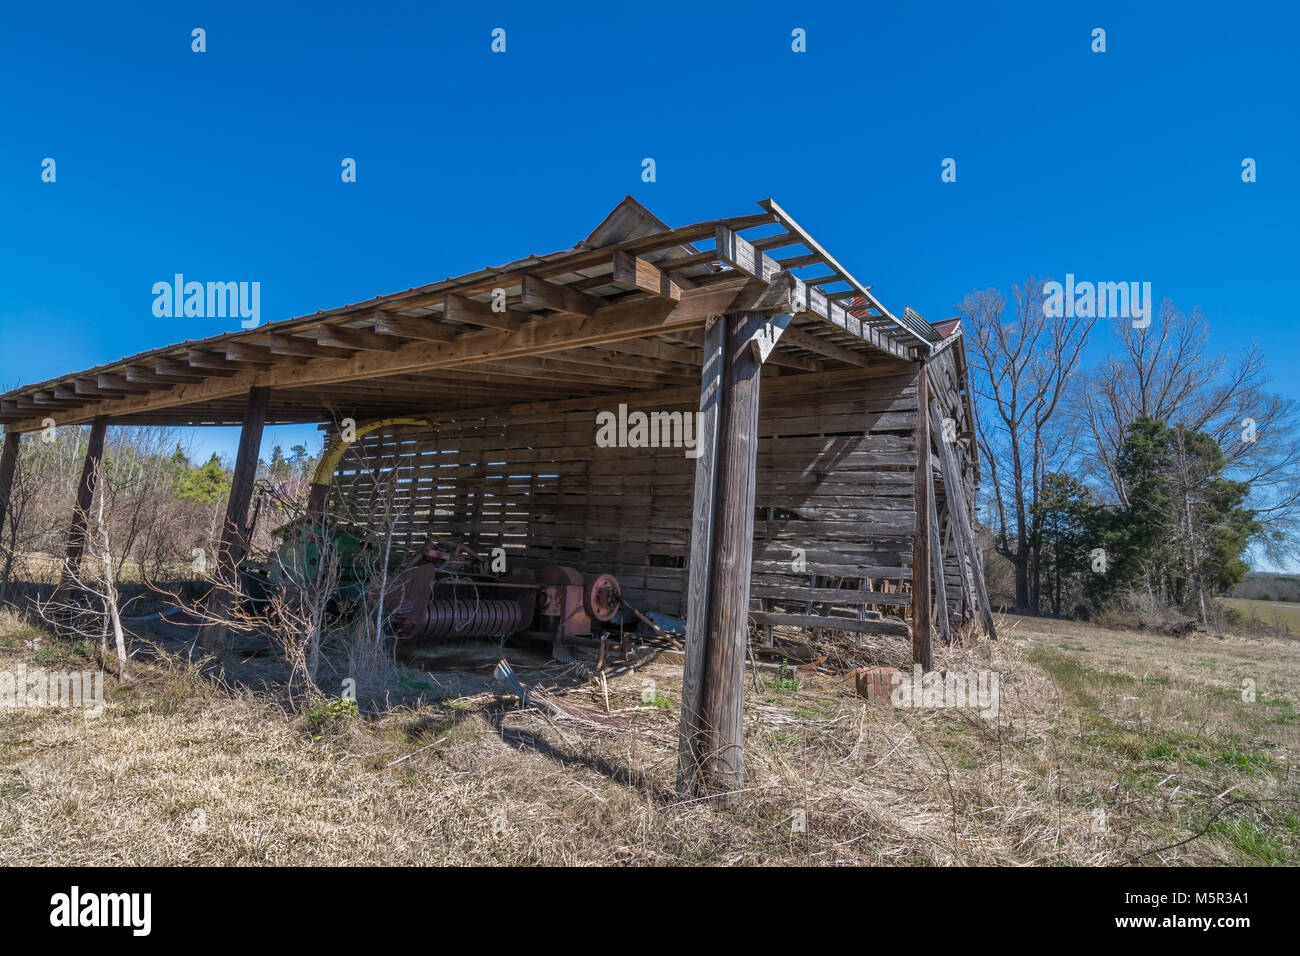 An old barn about to fall down. - Stock Image